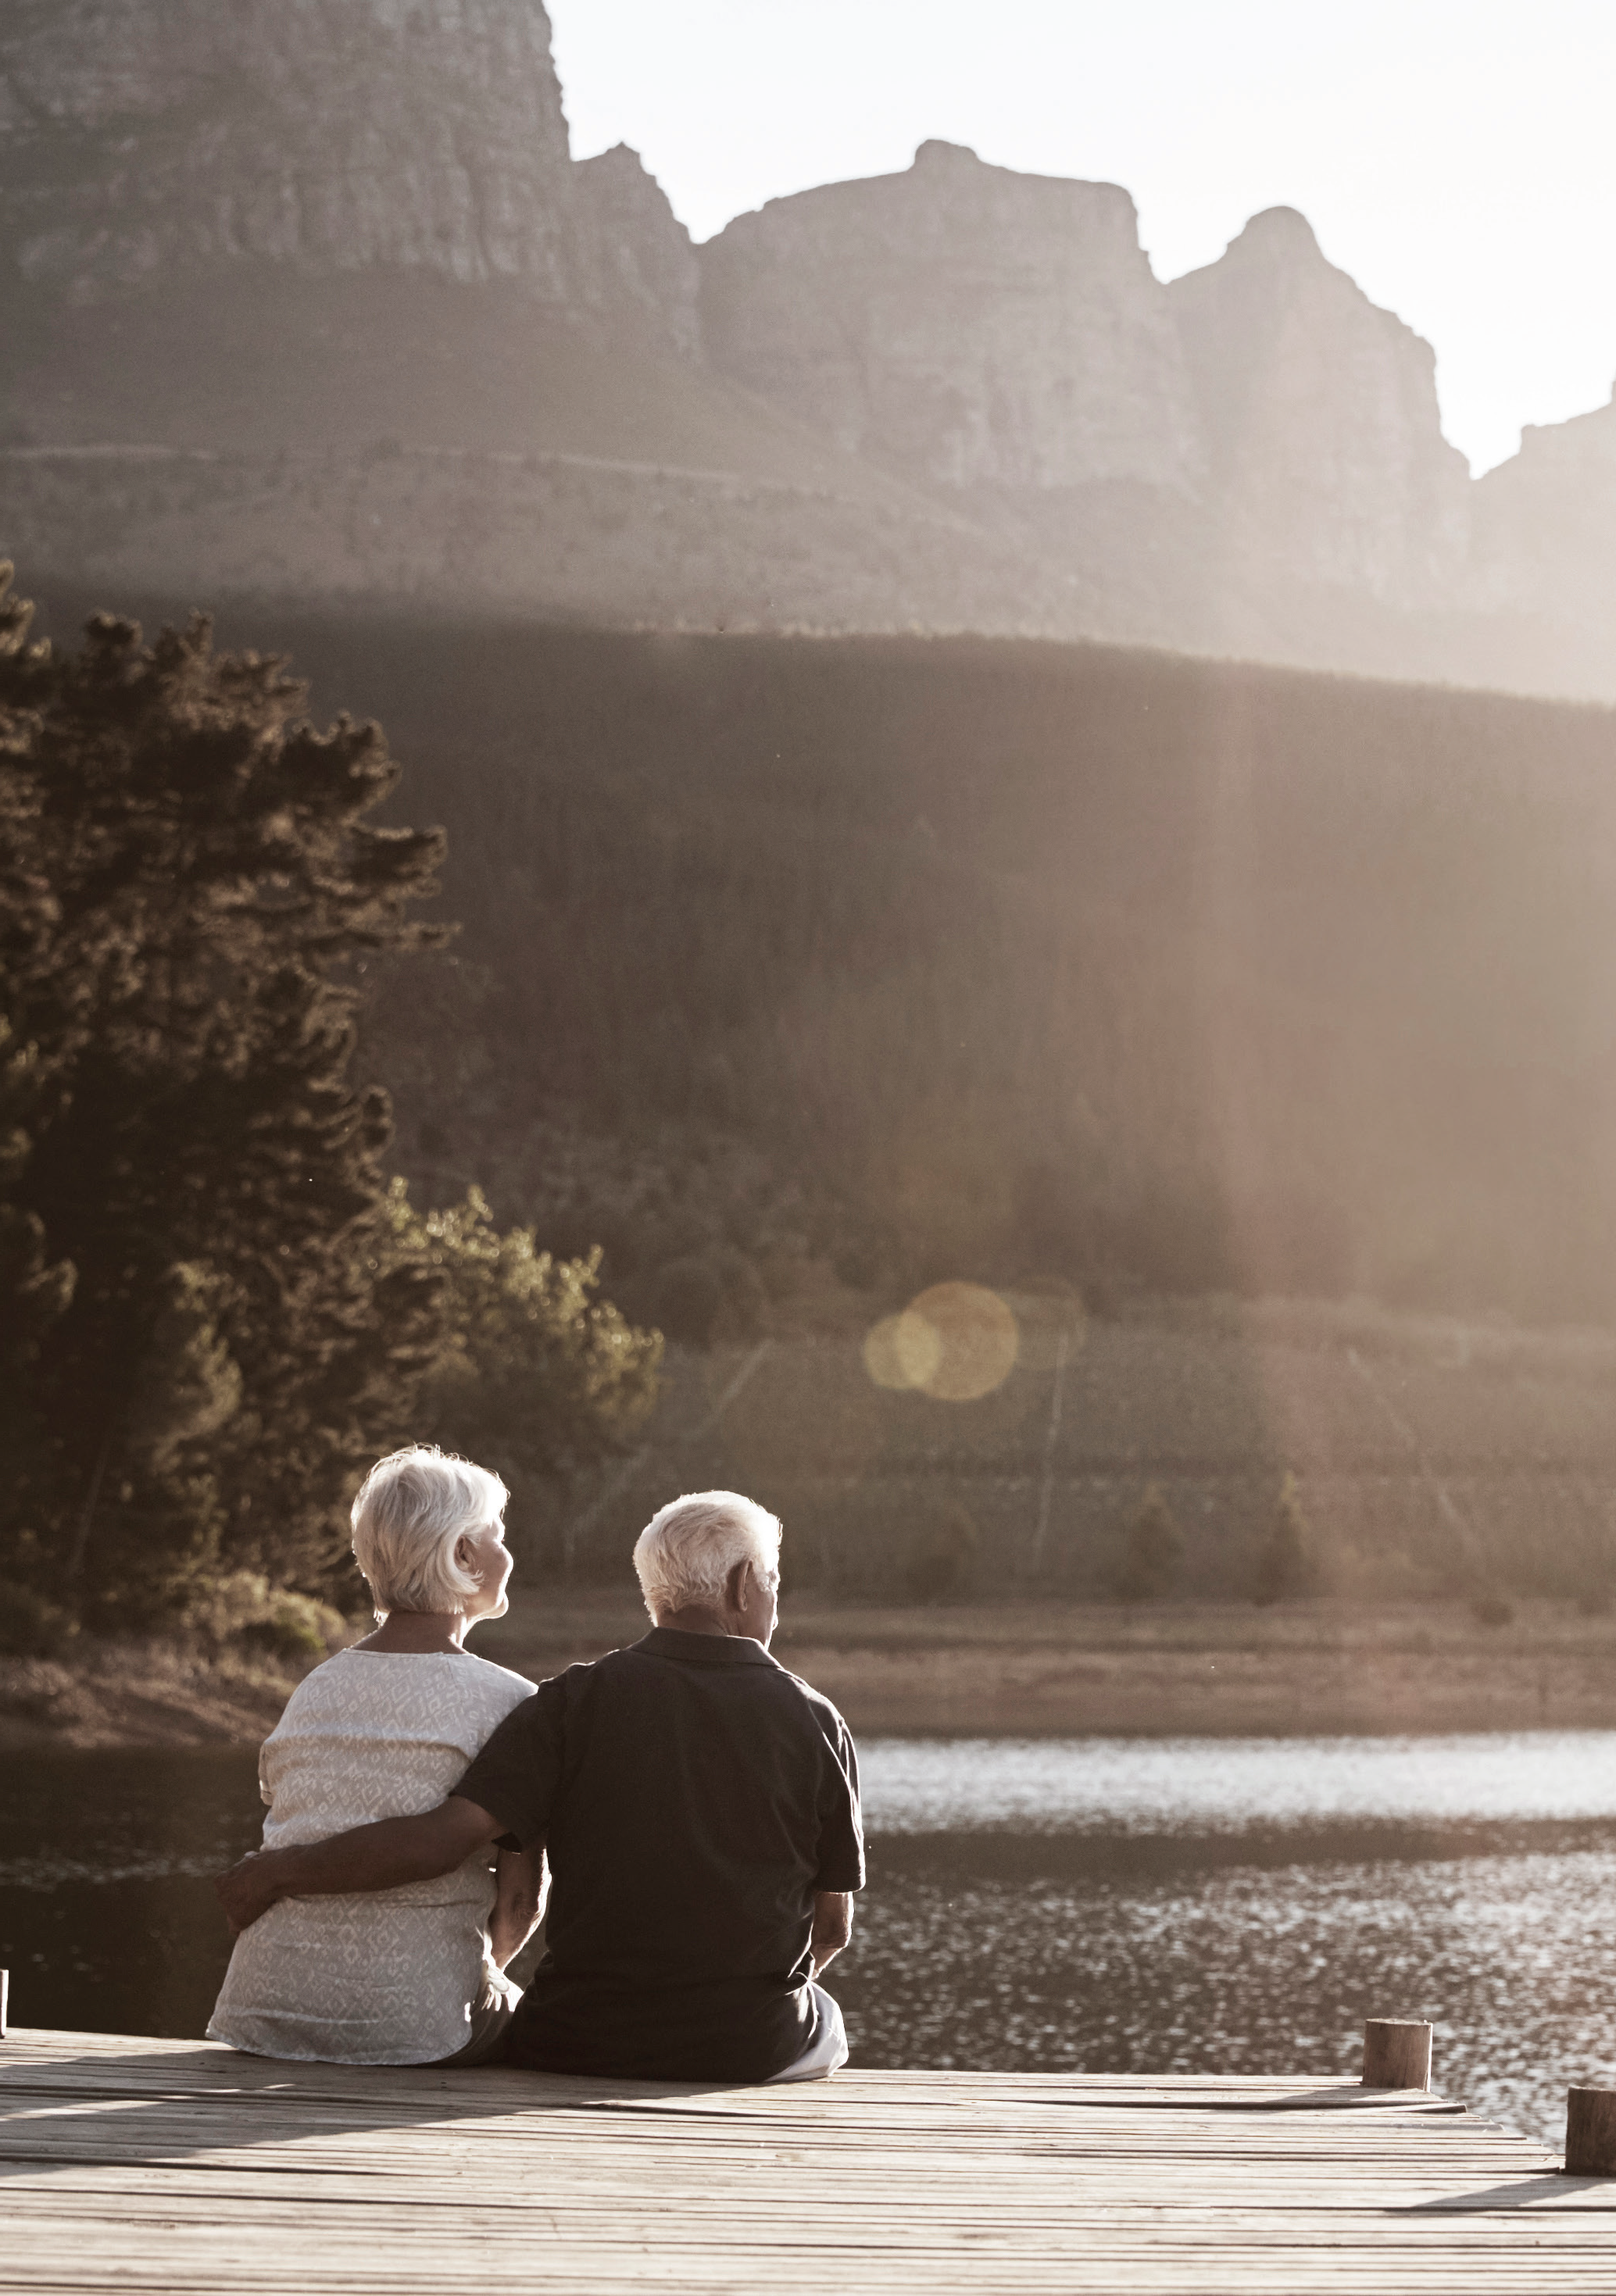 Later Life Options couple by lake scene